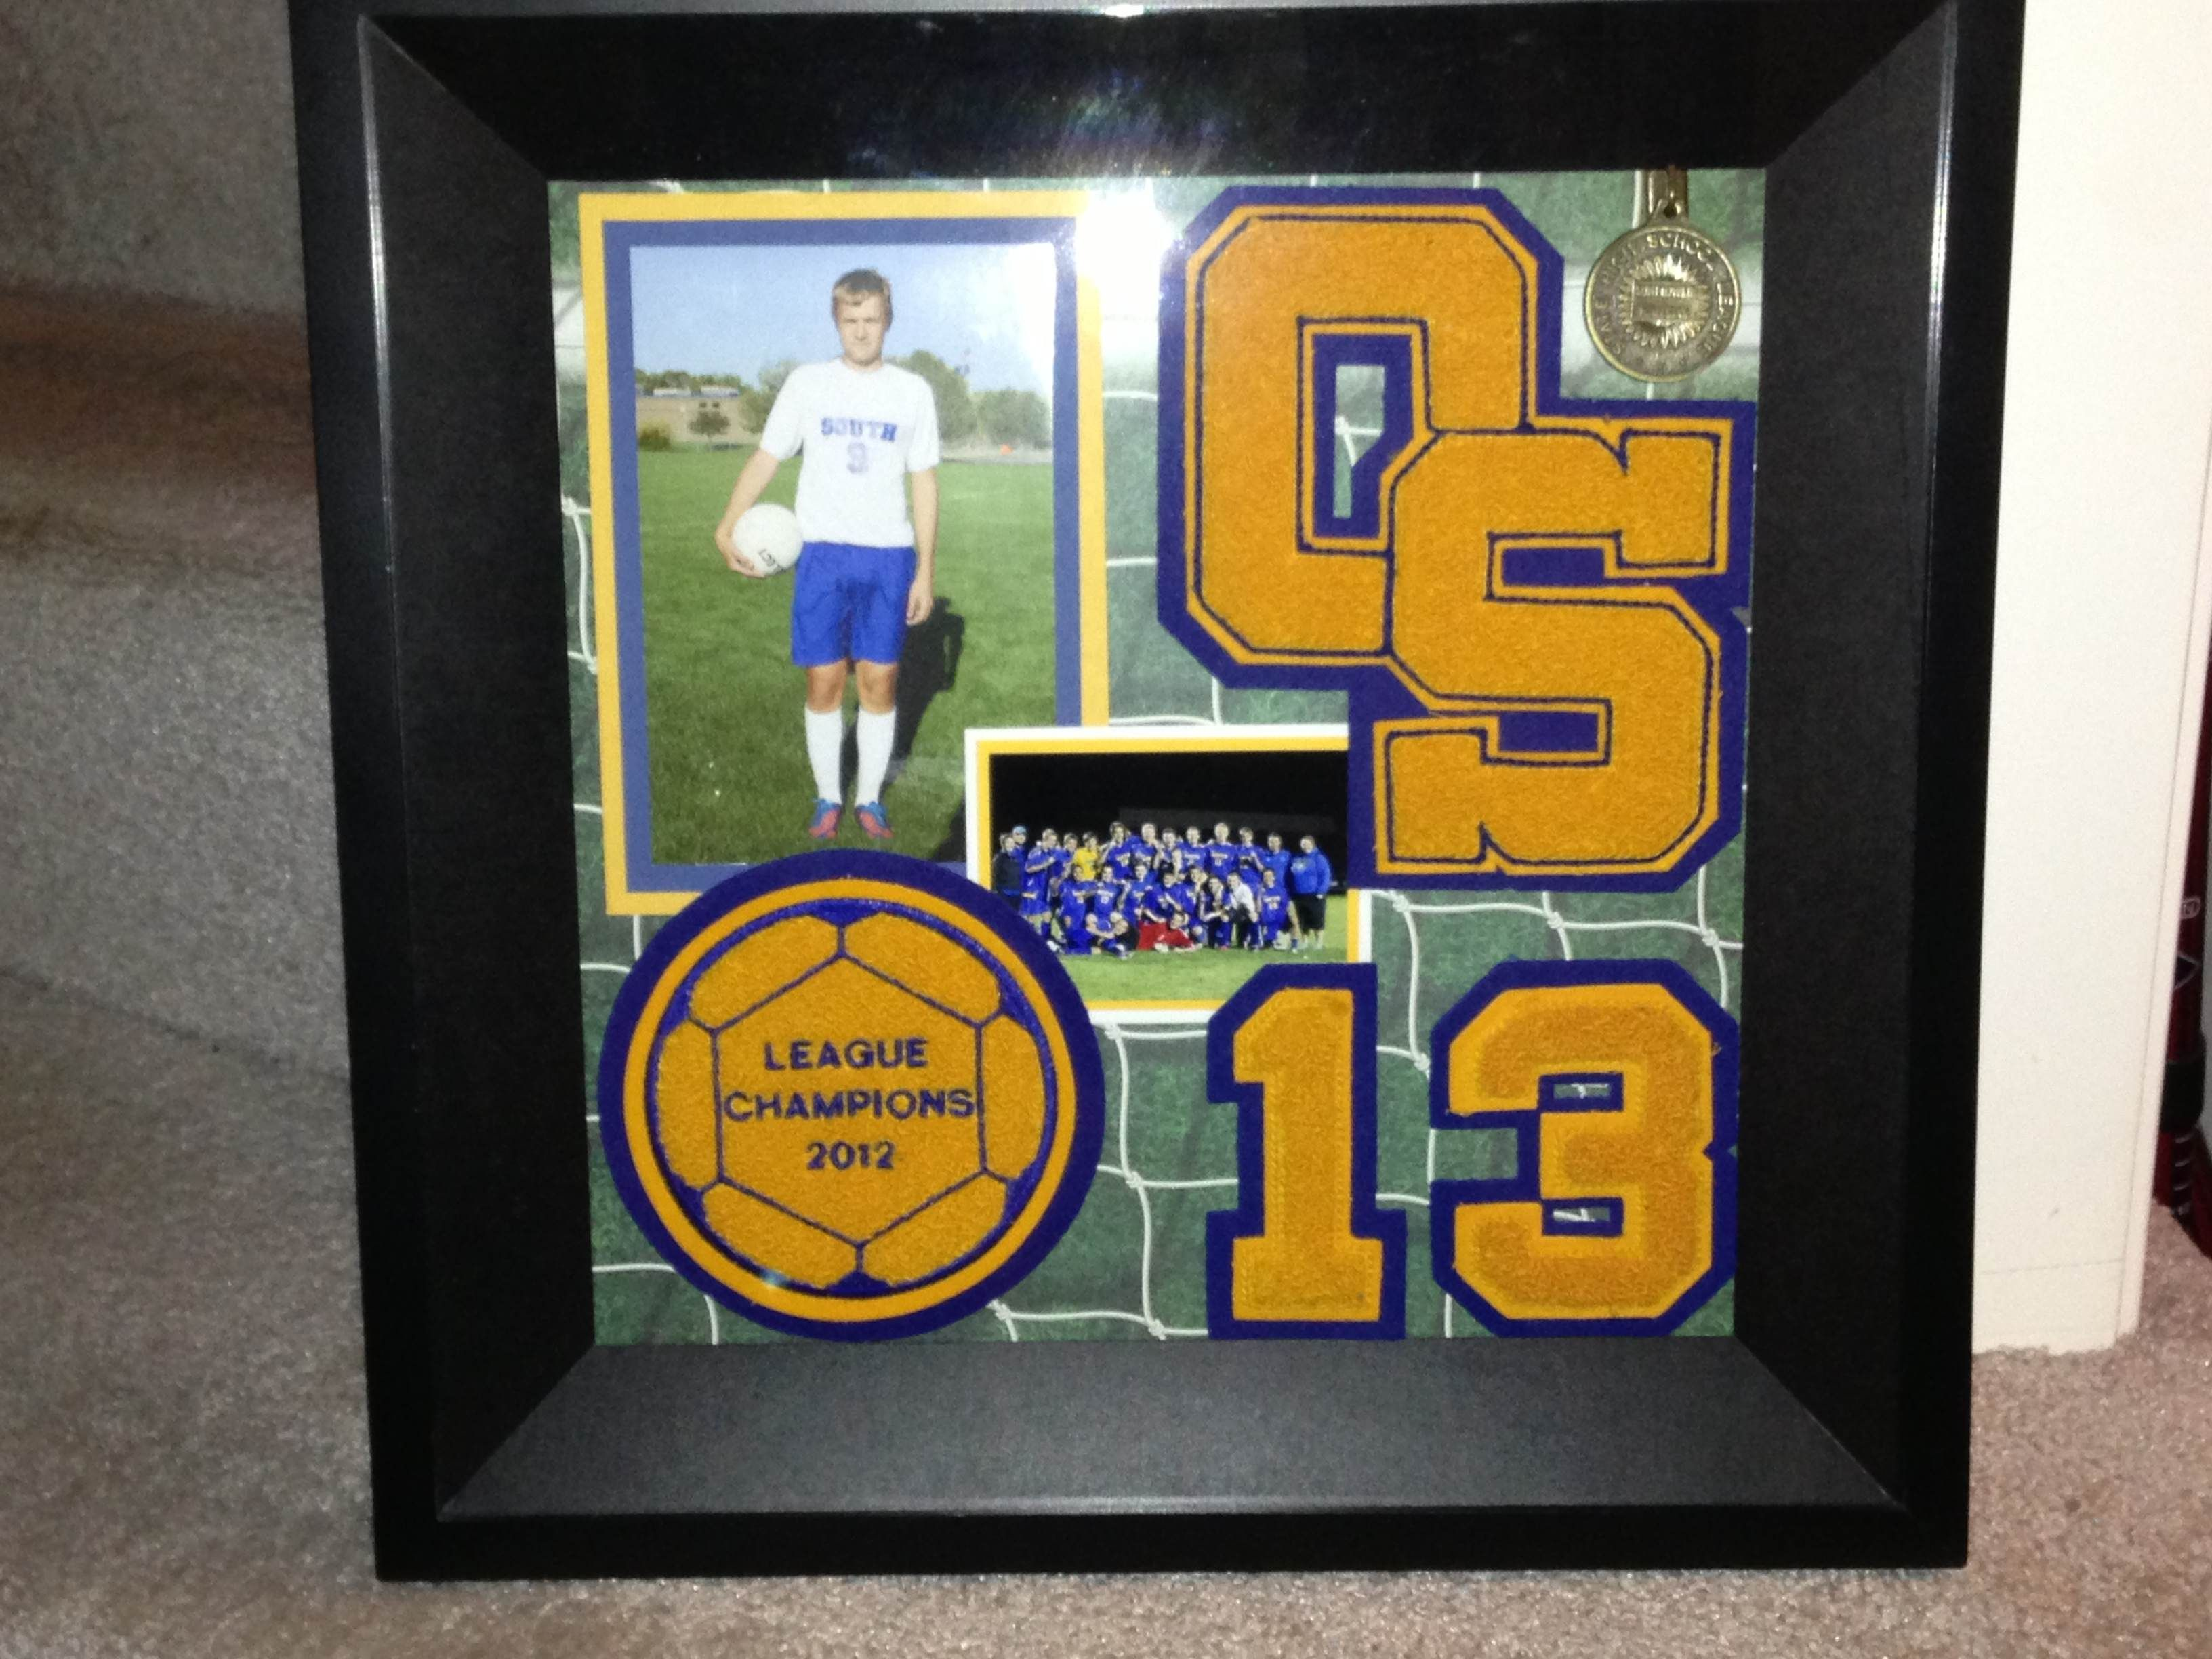 Varsity letter frame - another version to add the league champions ...